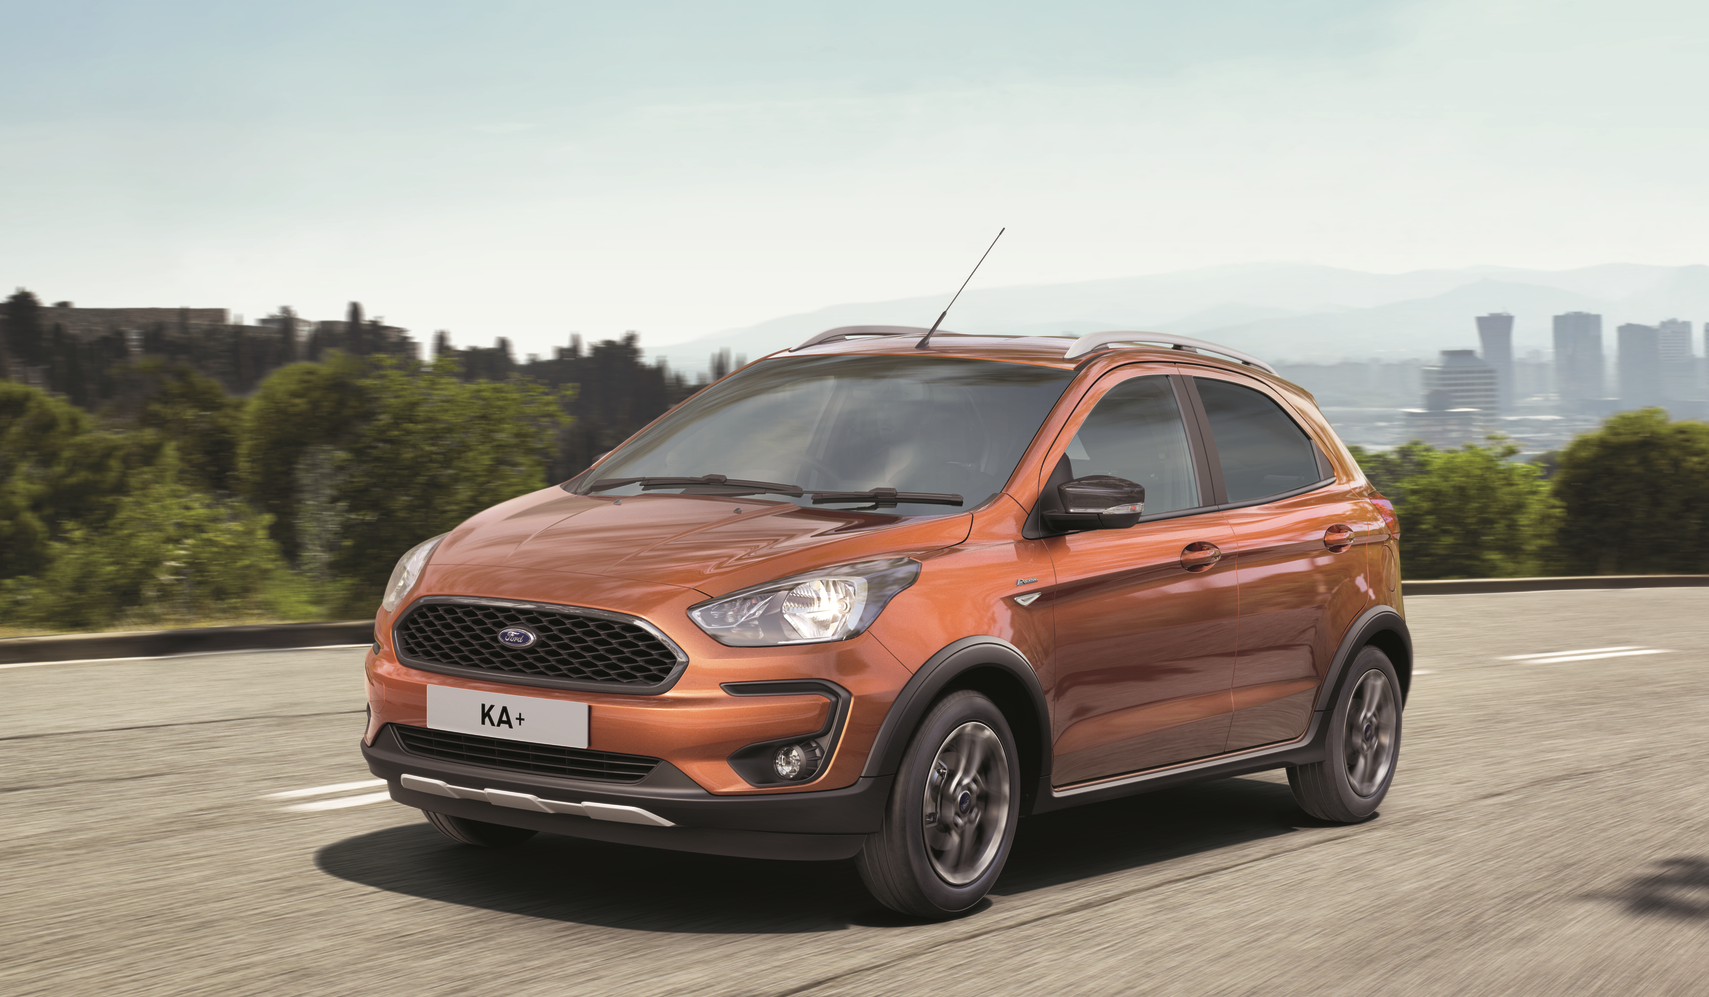 New Ford Ka+ now in stock